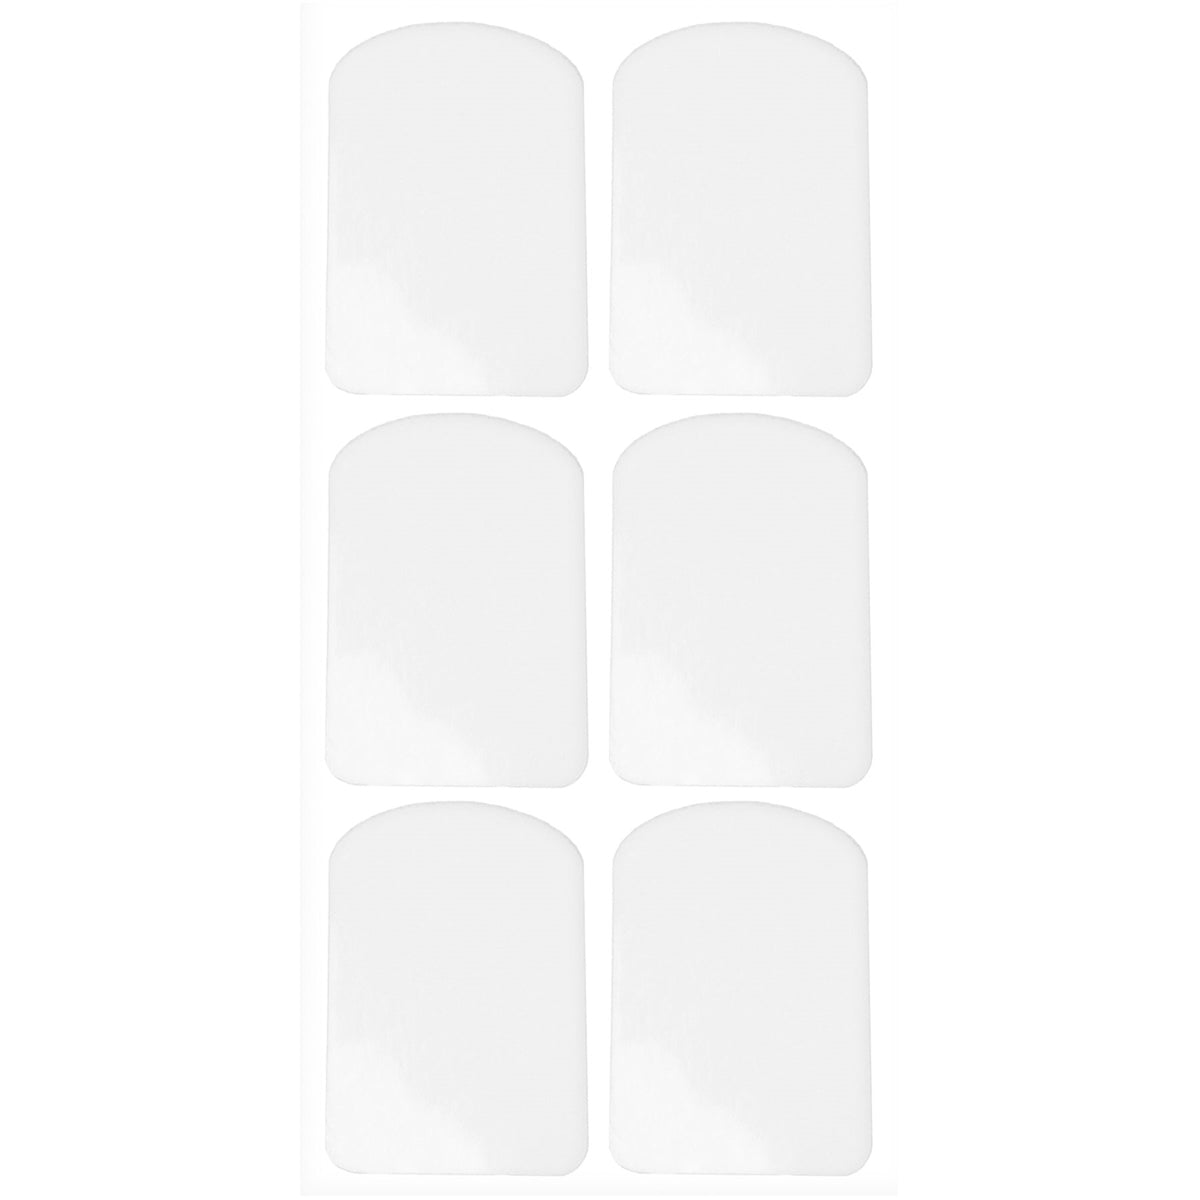 PROTEC Mouthpiece Cushion, 0.4mm, 6pc, Clear